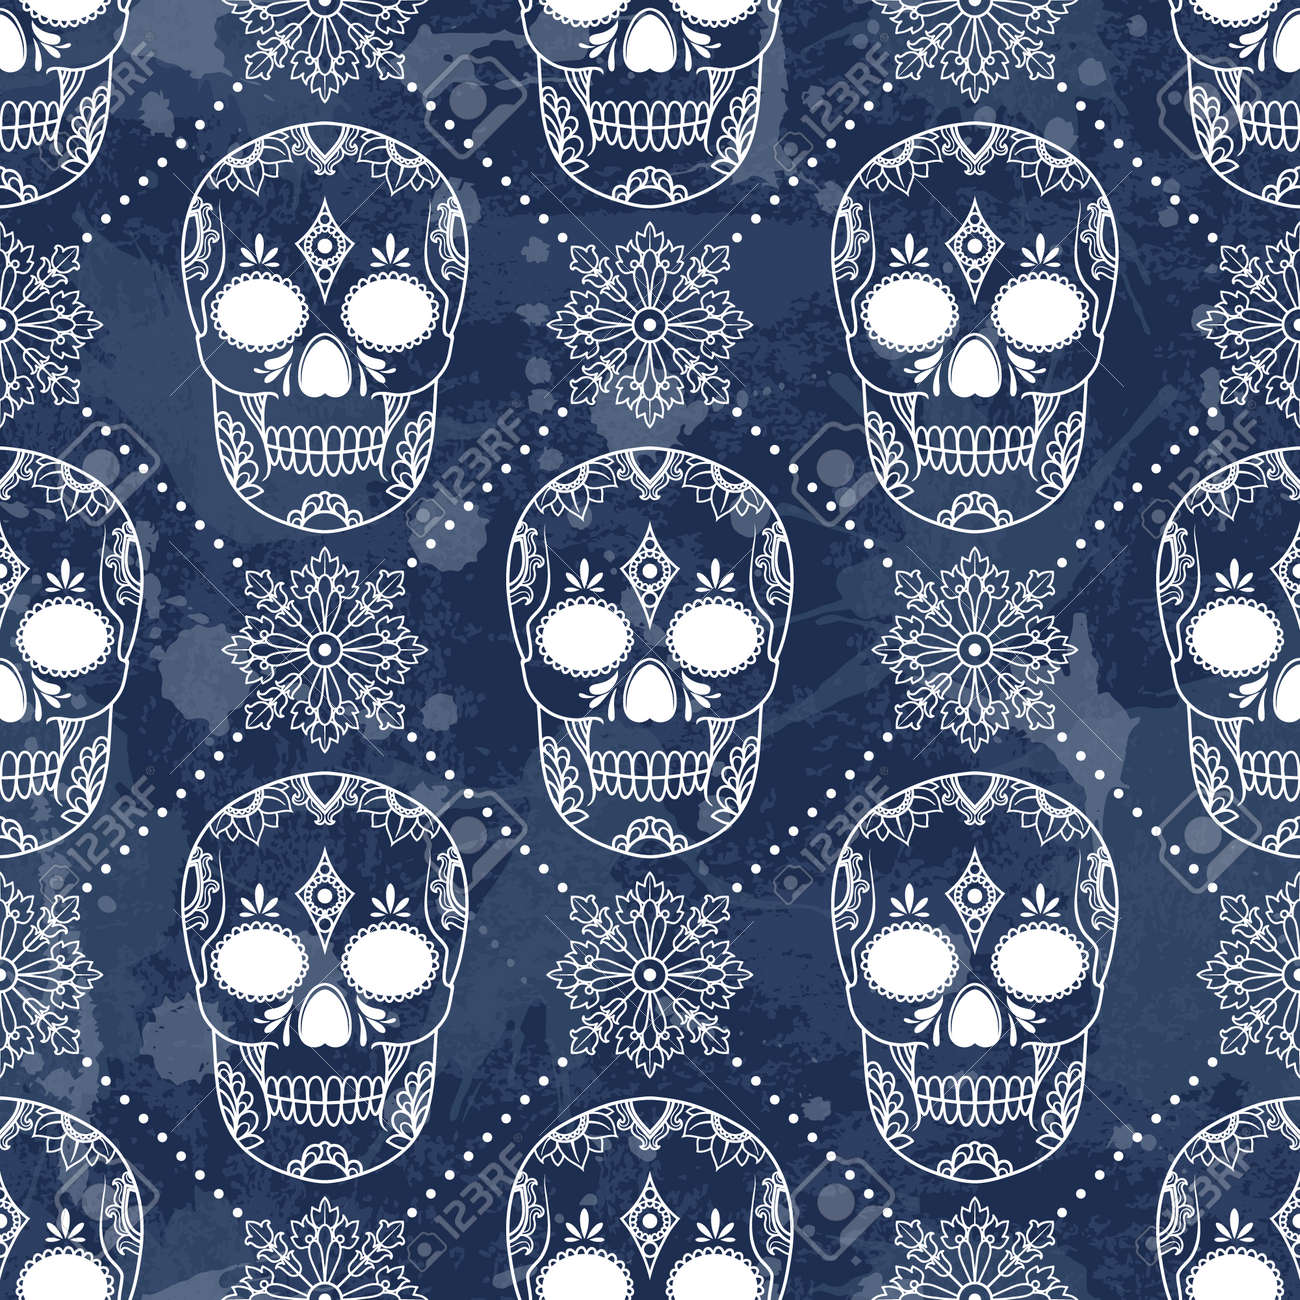 Vector pattern with skulls. Grunge background with drops and splashes - 32184666